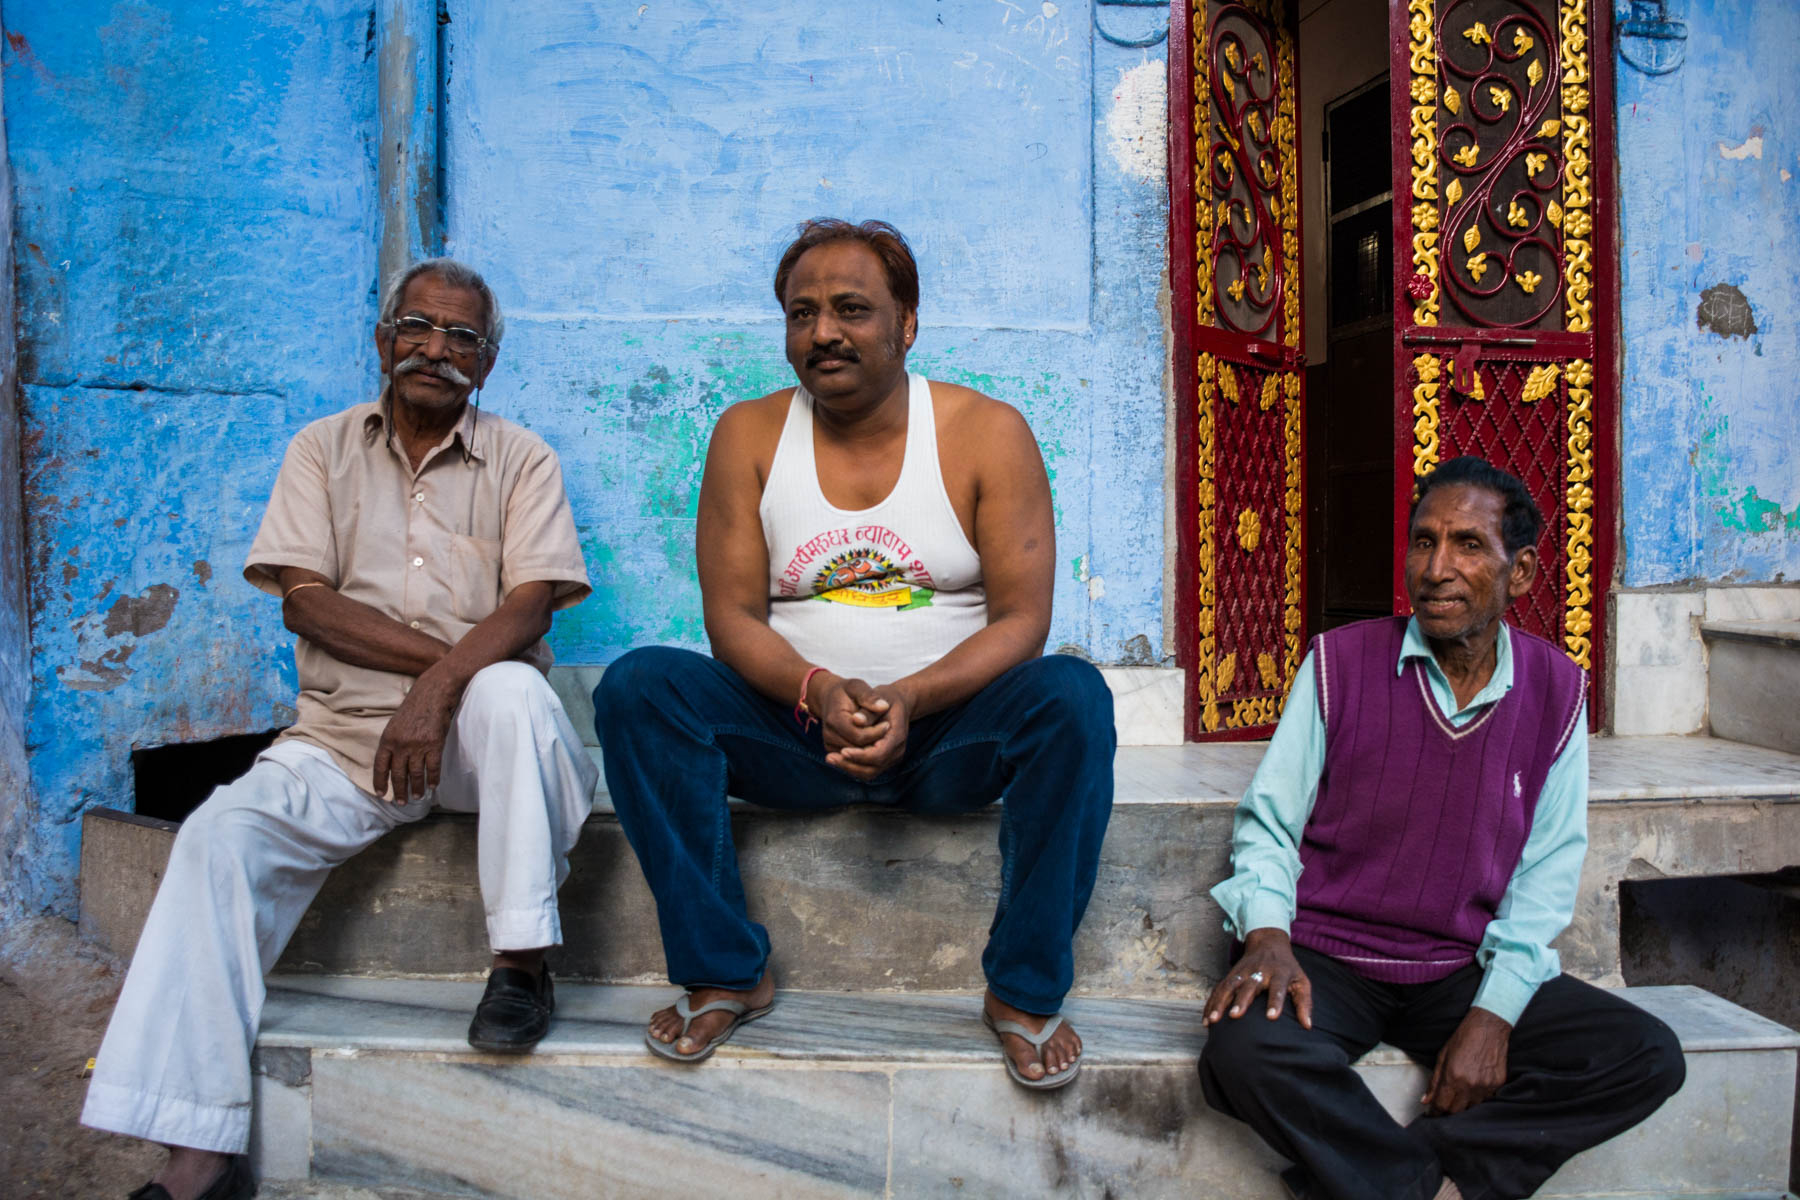 Photo essay about the streets and people of the Blue City of Jodhpur, Rajasthan, India - Three men on a stoop in Jodhpur - Lost With Purpose